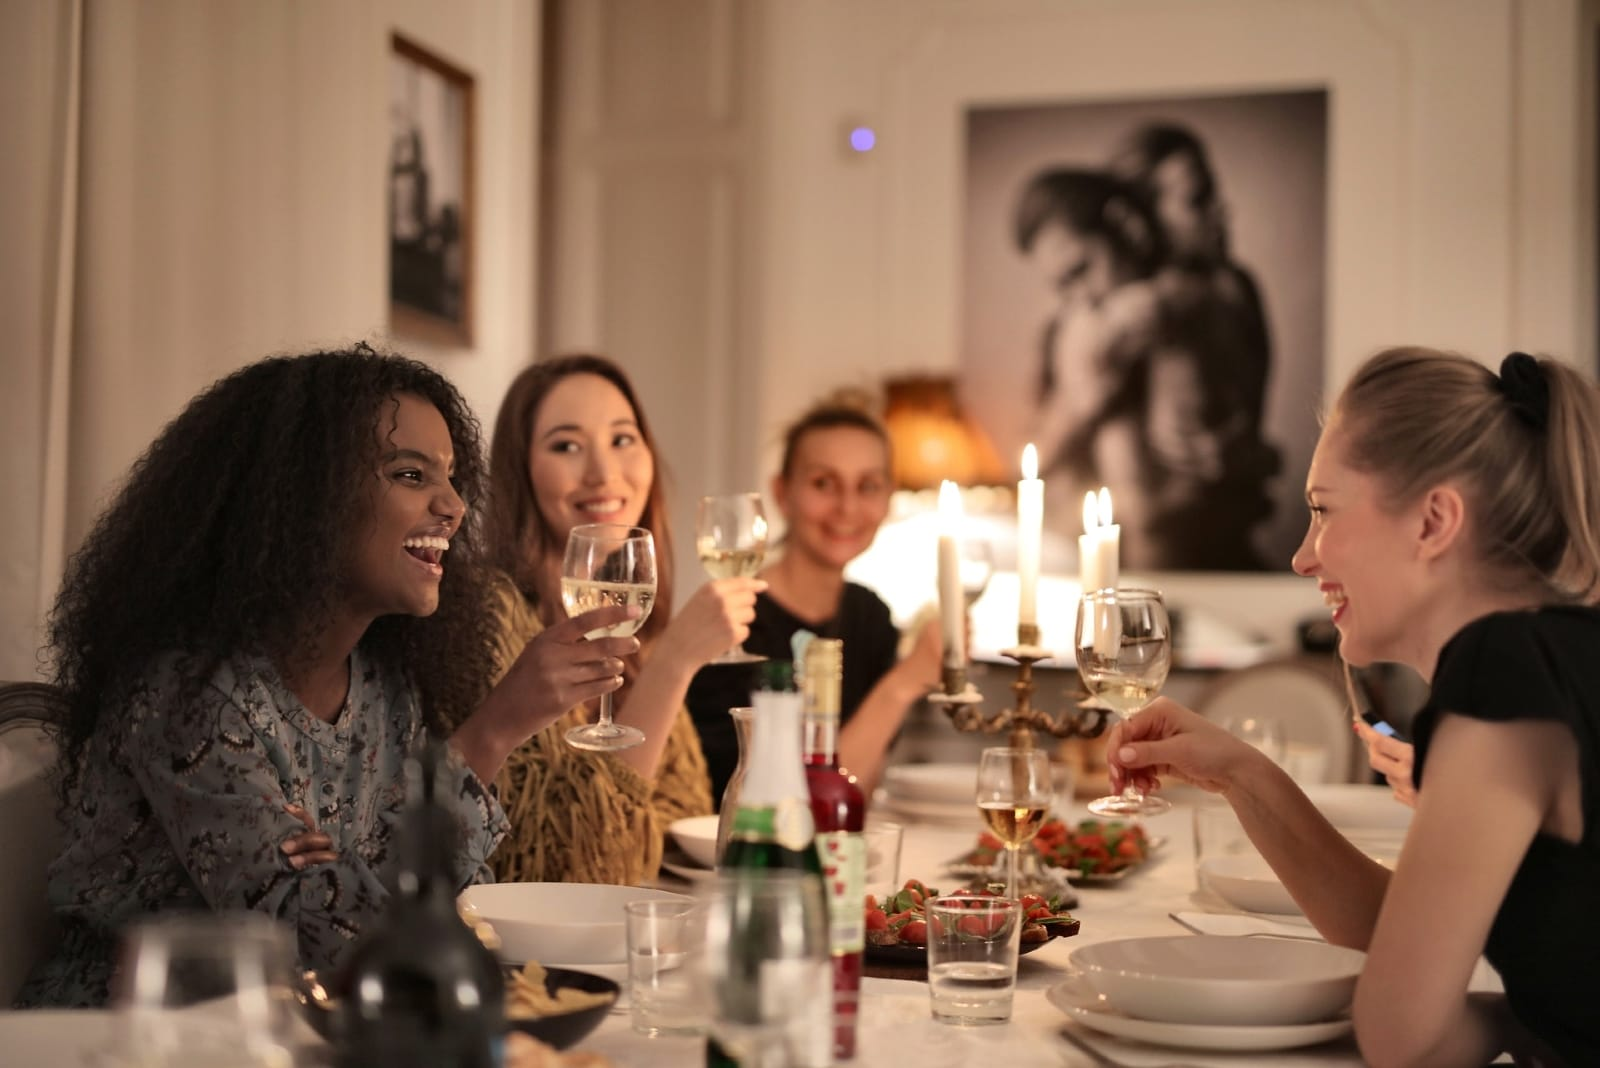 women holding glasses of wine while sitting at table